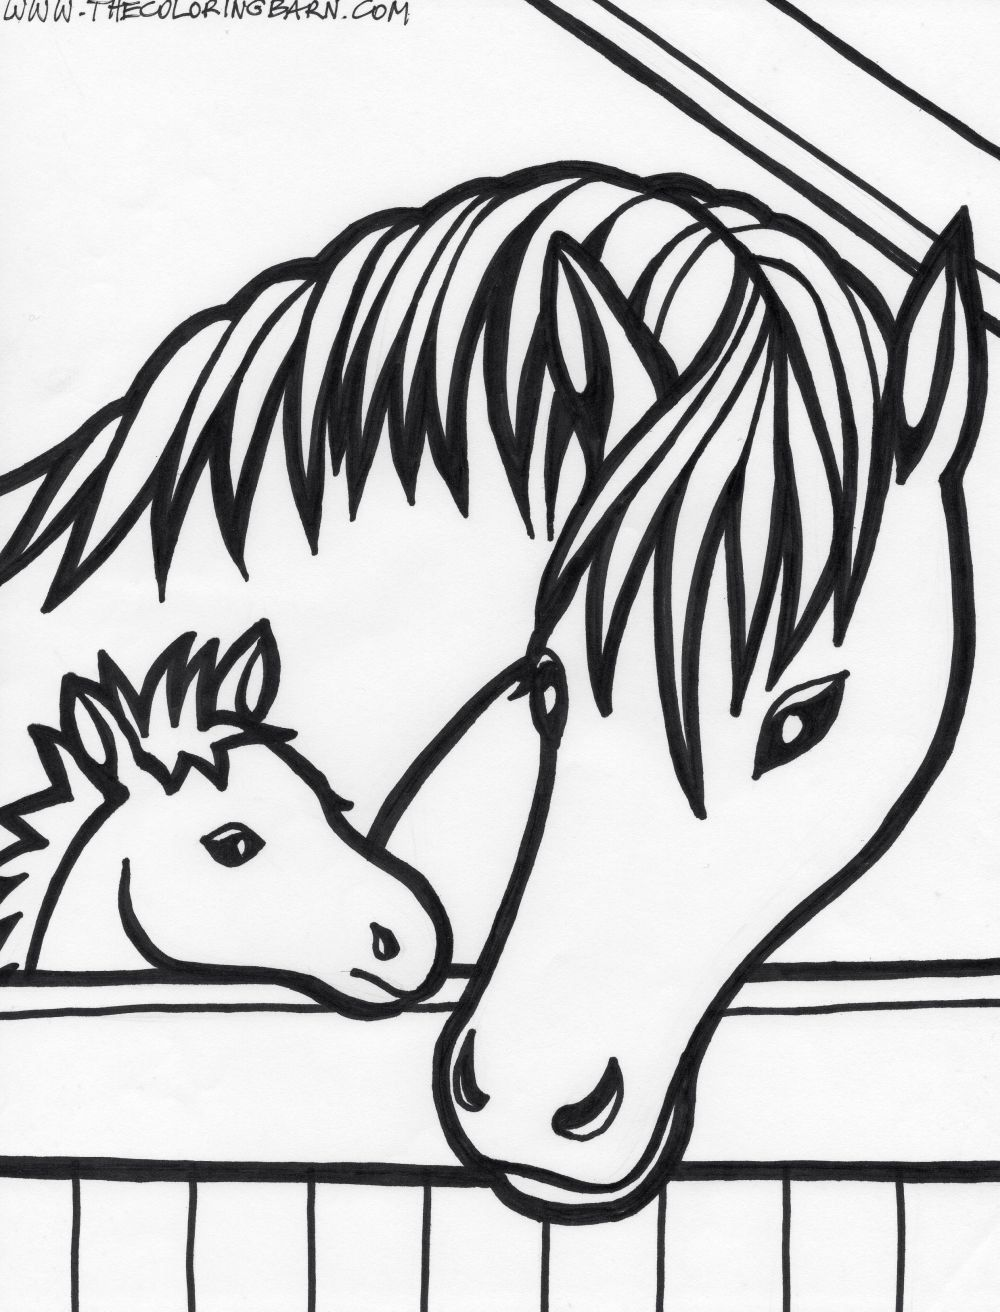 Image From Http Www Onlycoloringpages Com Wp Content Uploads 2015 01 Horse Coloring Pages 01 Jpg Horse Coloring Pages Horse Coloring Books Horse Coloring [ 1312 x 1000 Pixel ]